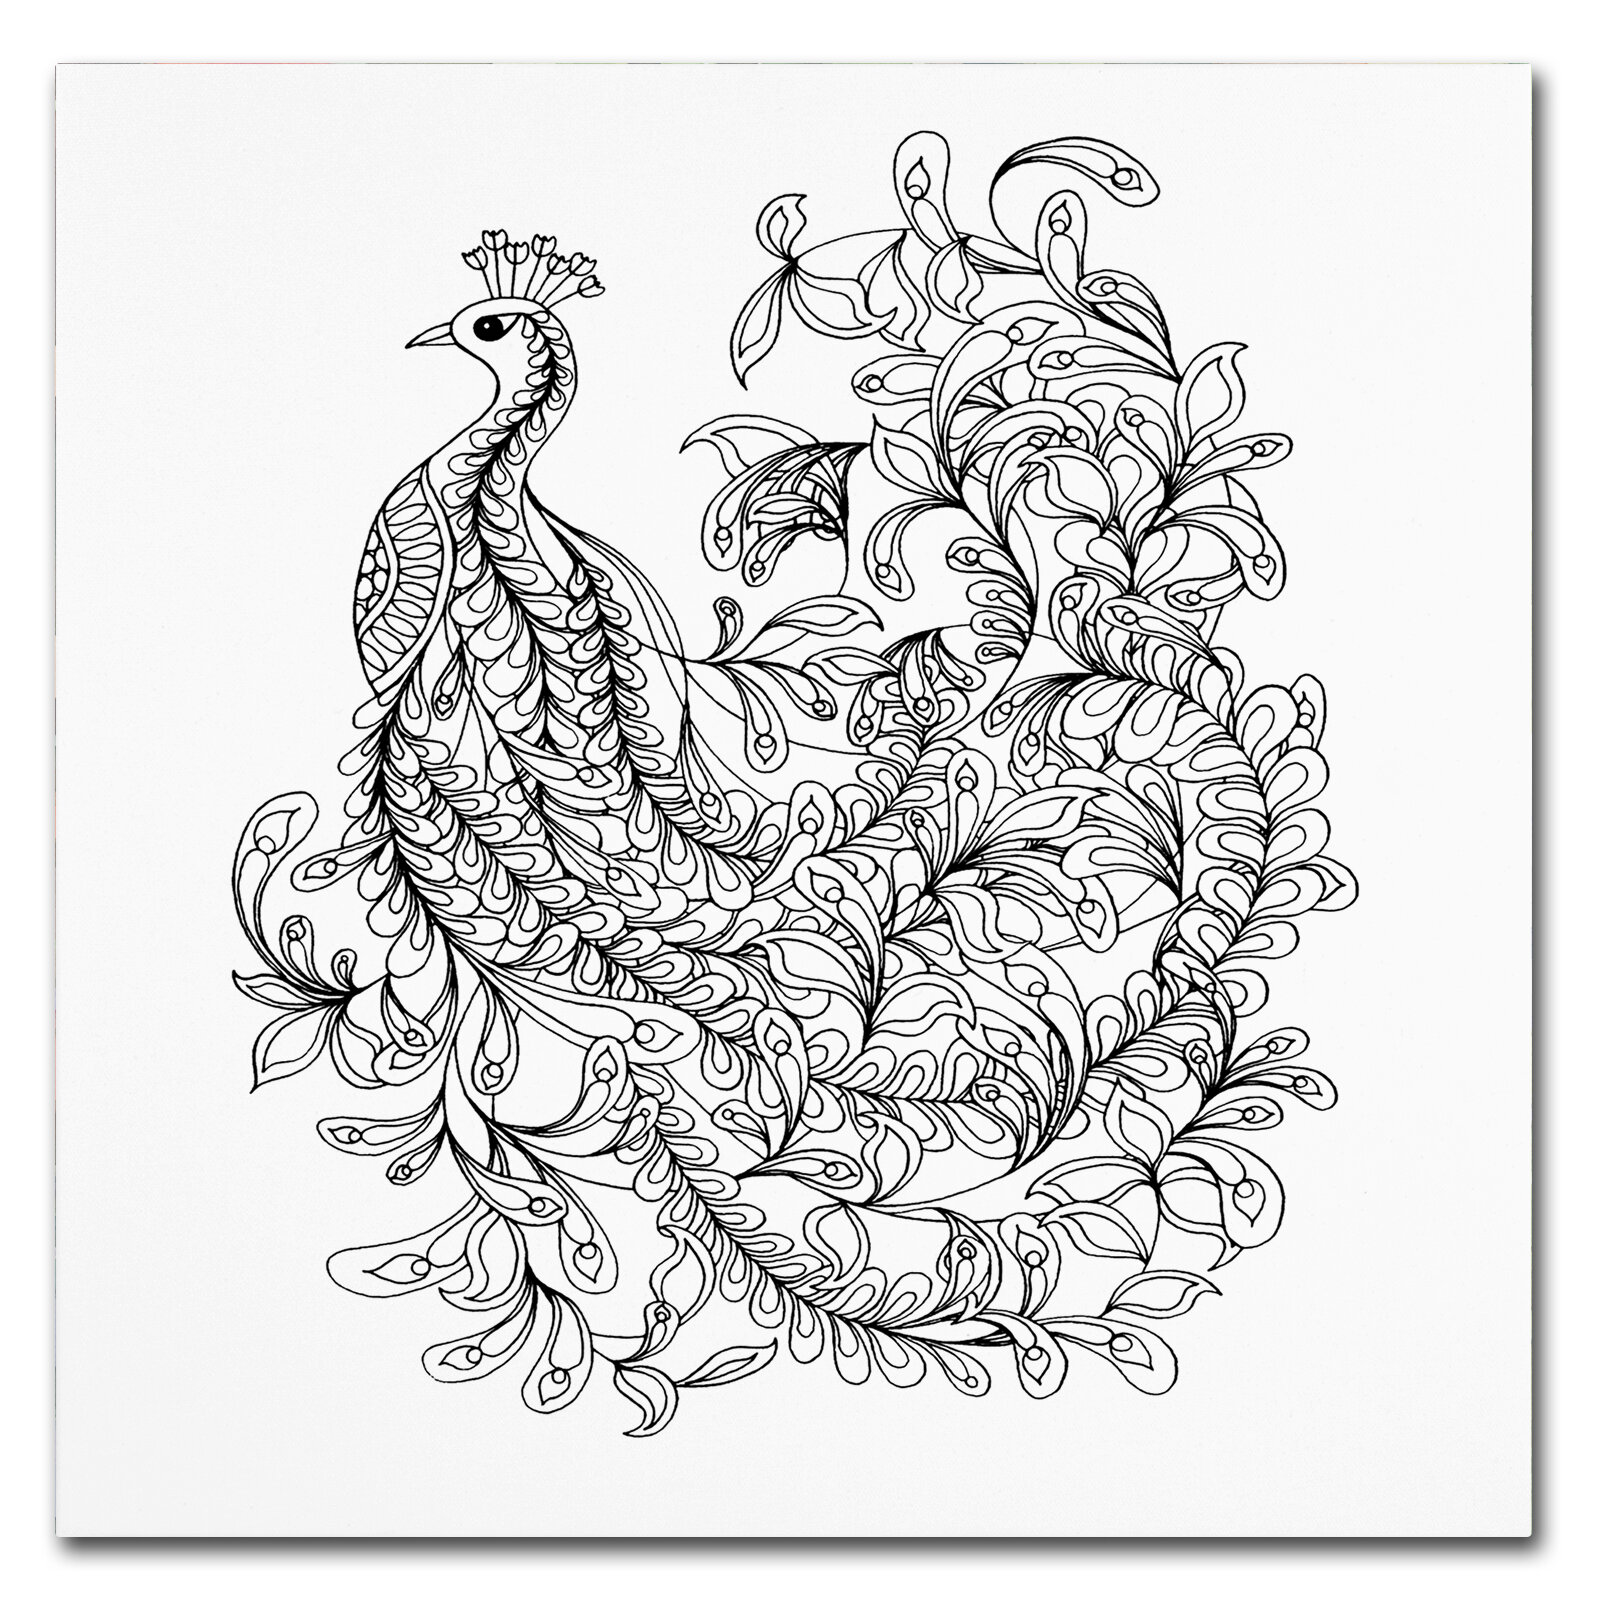 'Fancy Peacock' Drawing Print on Wrapped Canvas